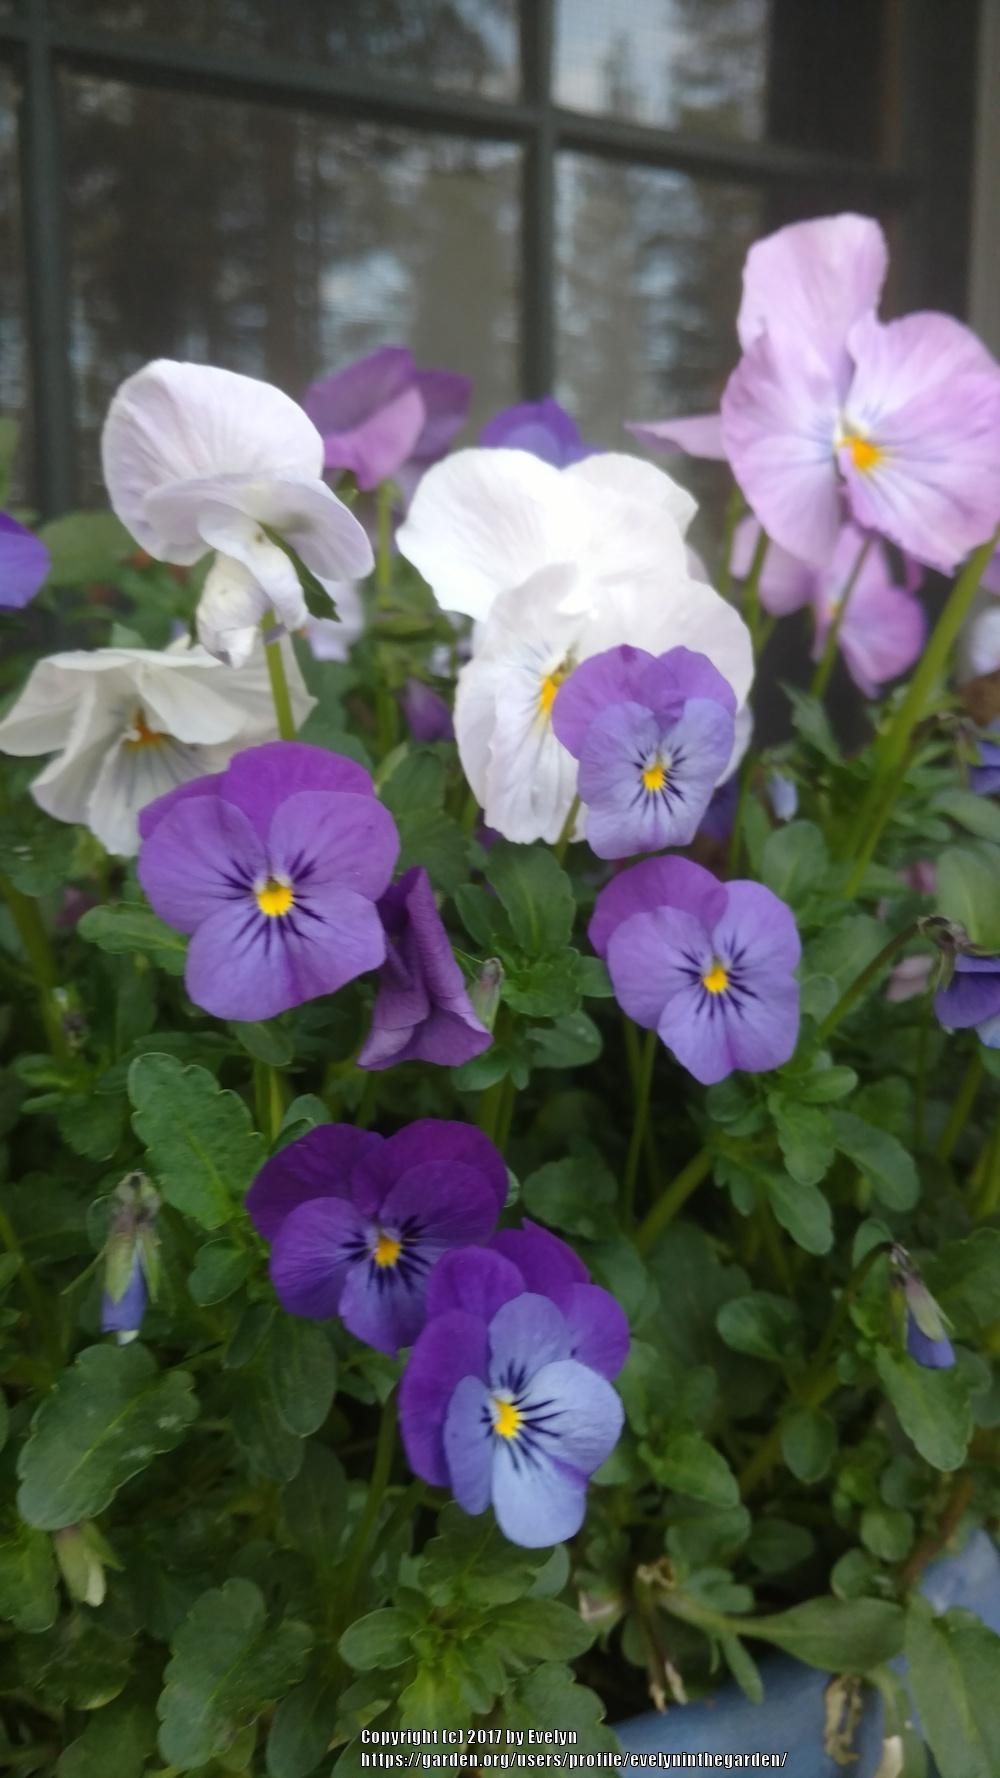 february's flower: violas (violets and pansies): violets - garden